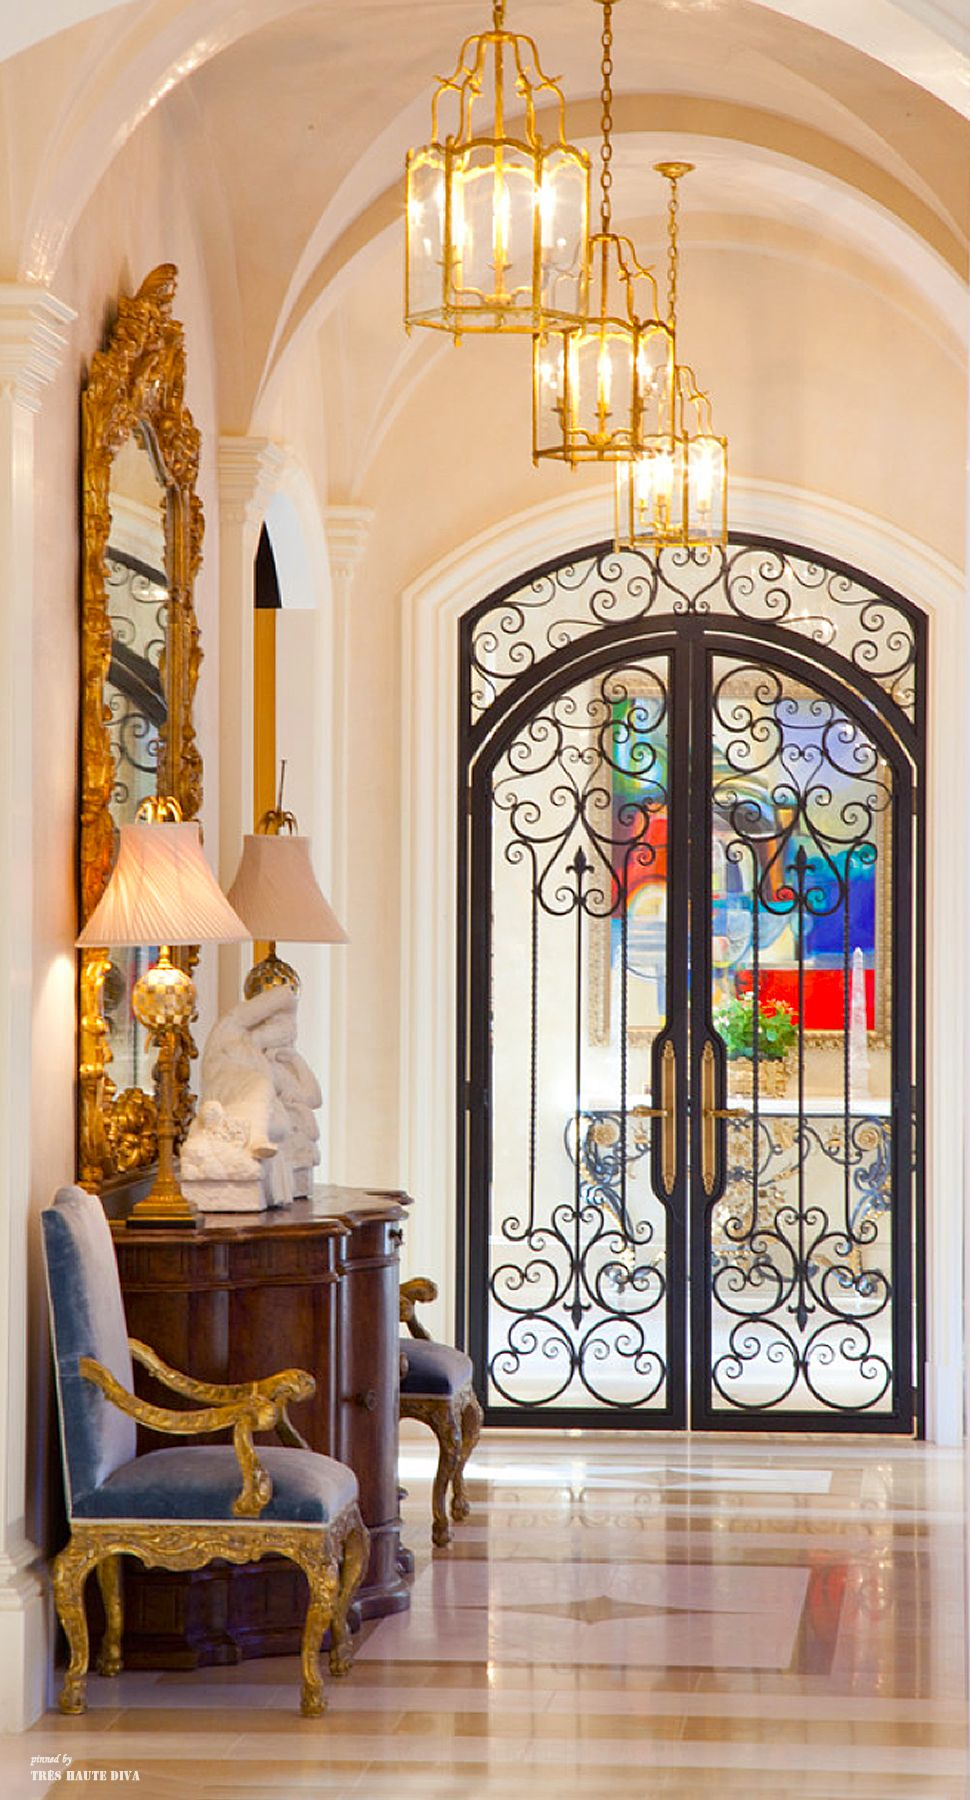 Hallway with Groin Vault Arched Ceiling and Wrought Iron ...